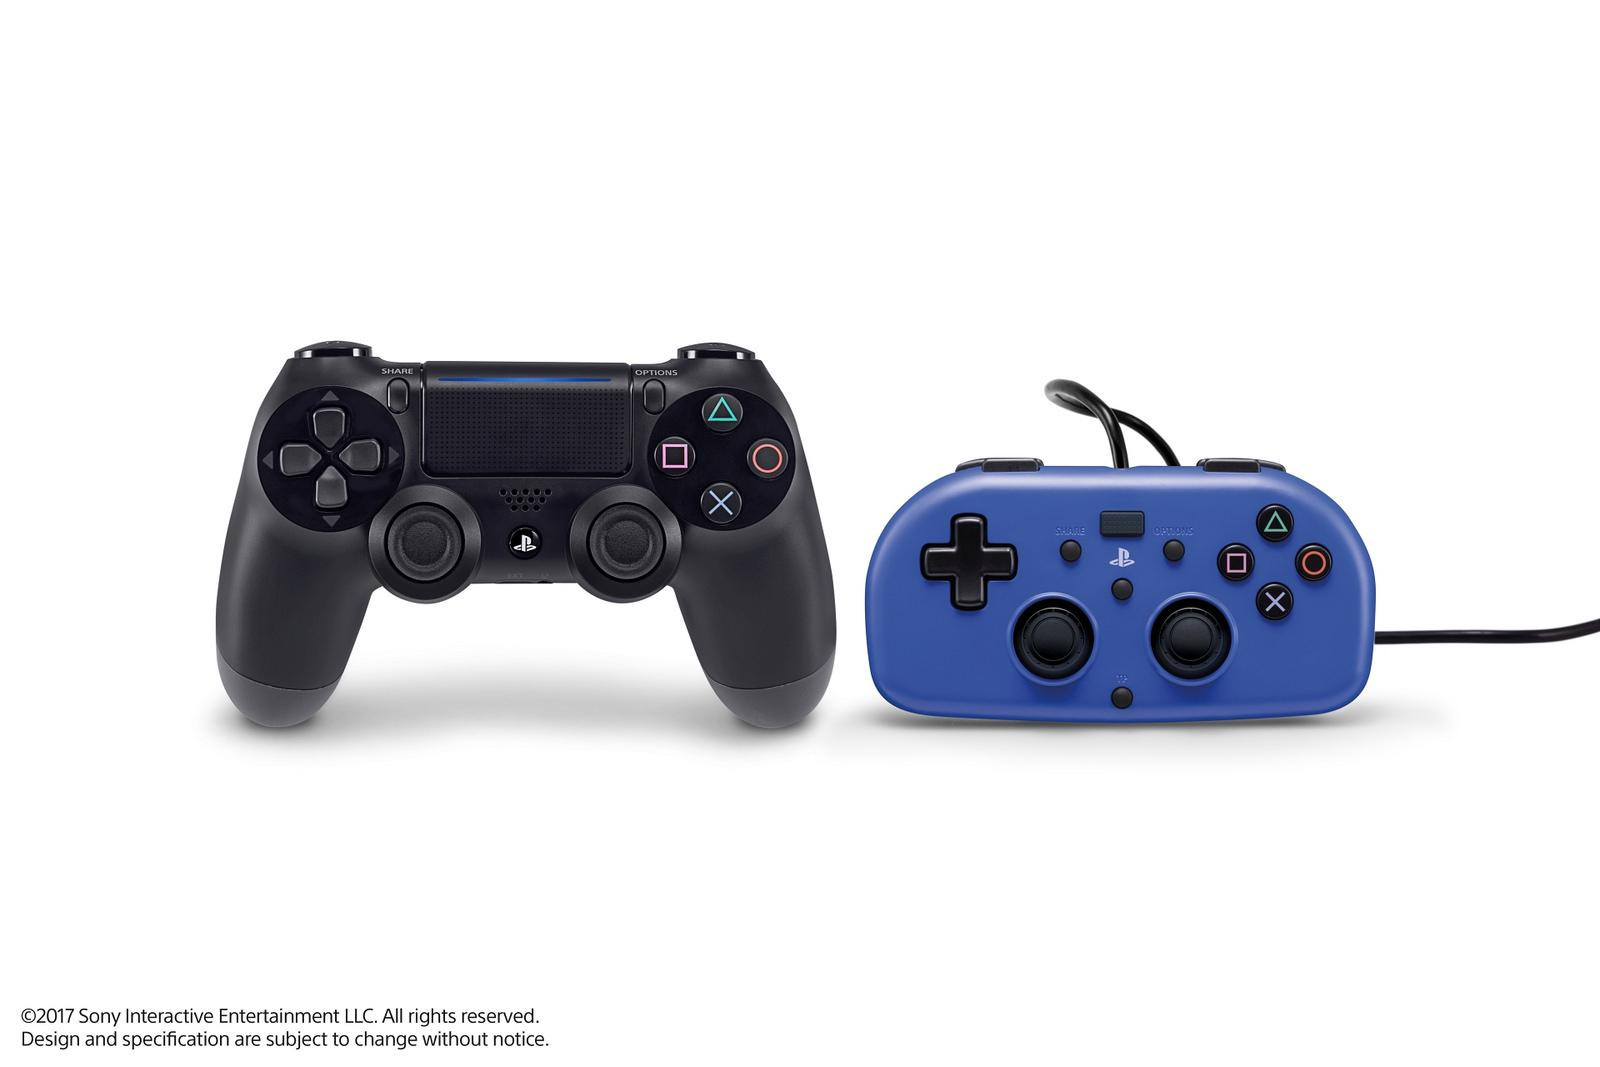 PS4 mini wired controllers coming to the US, parents